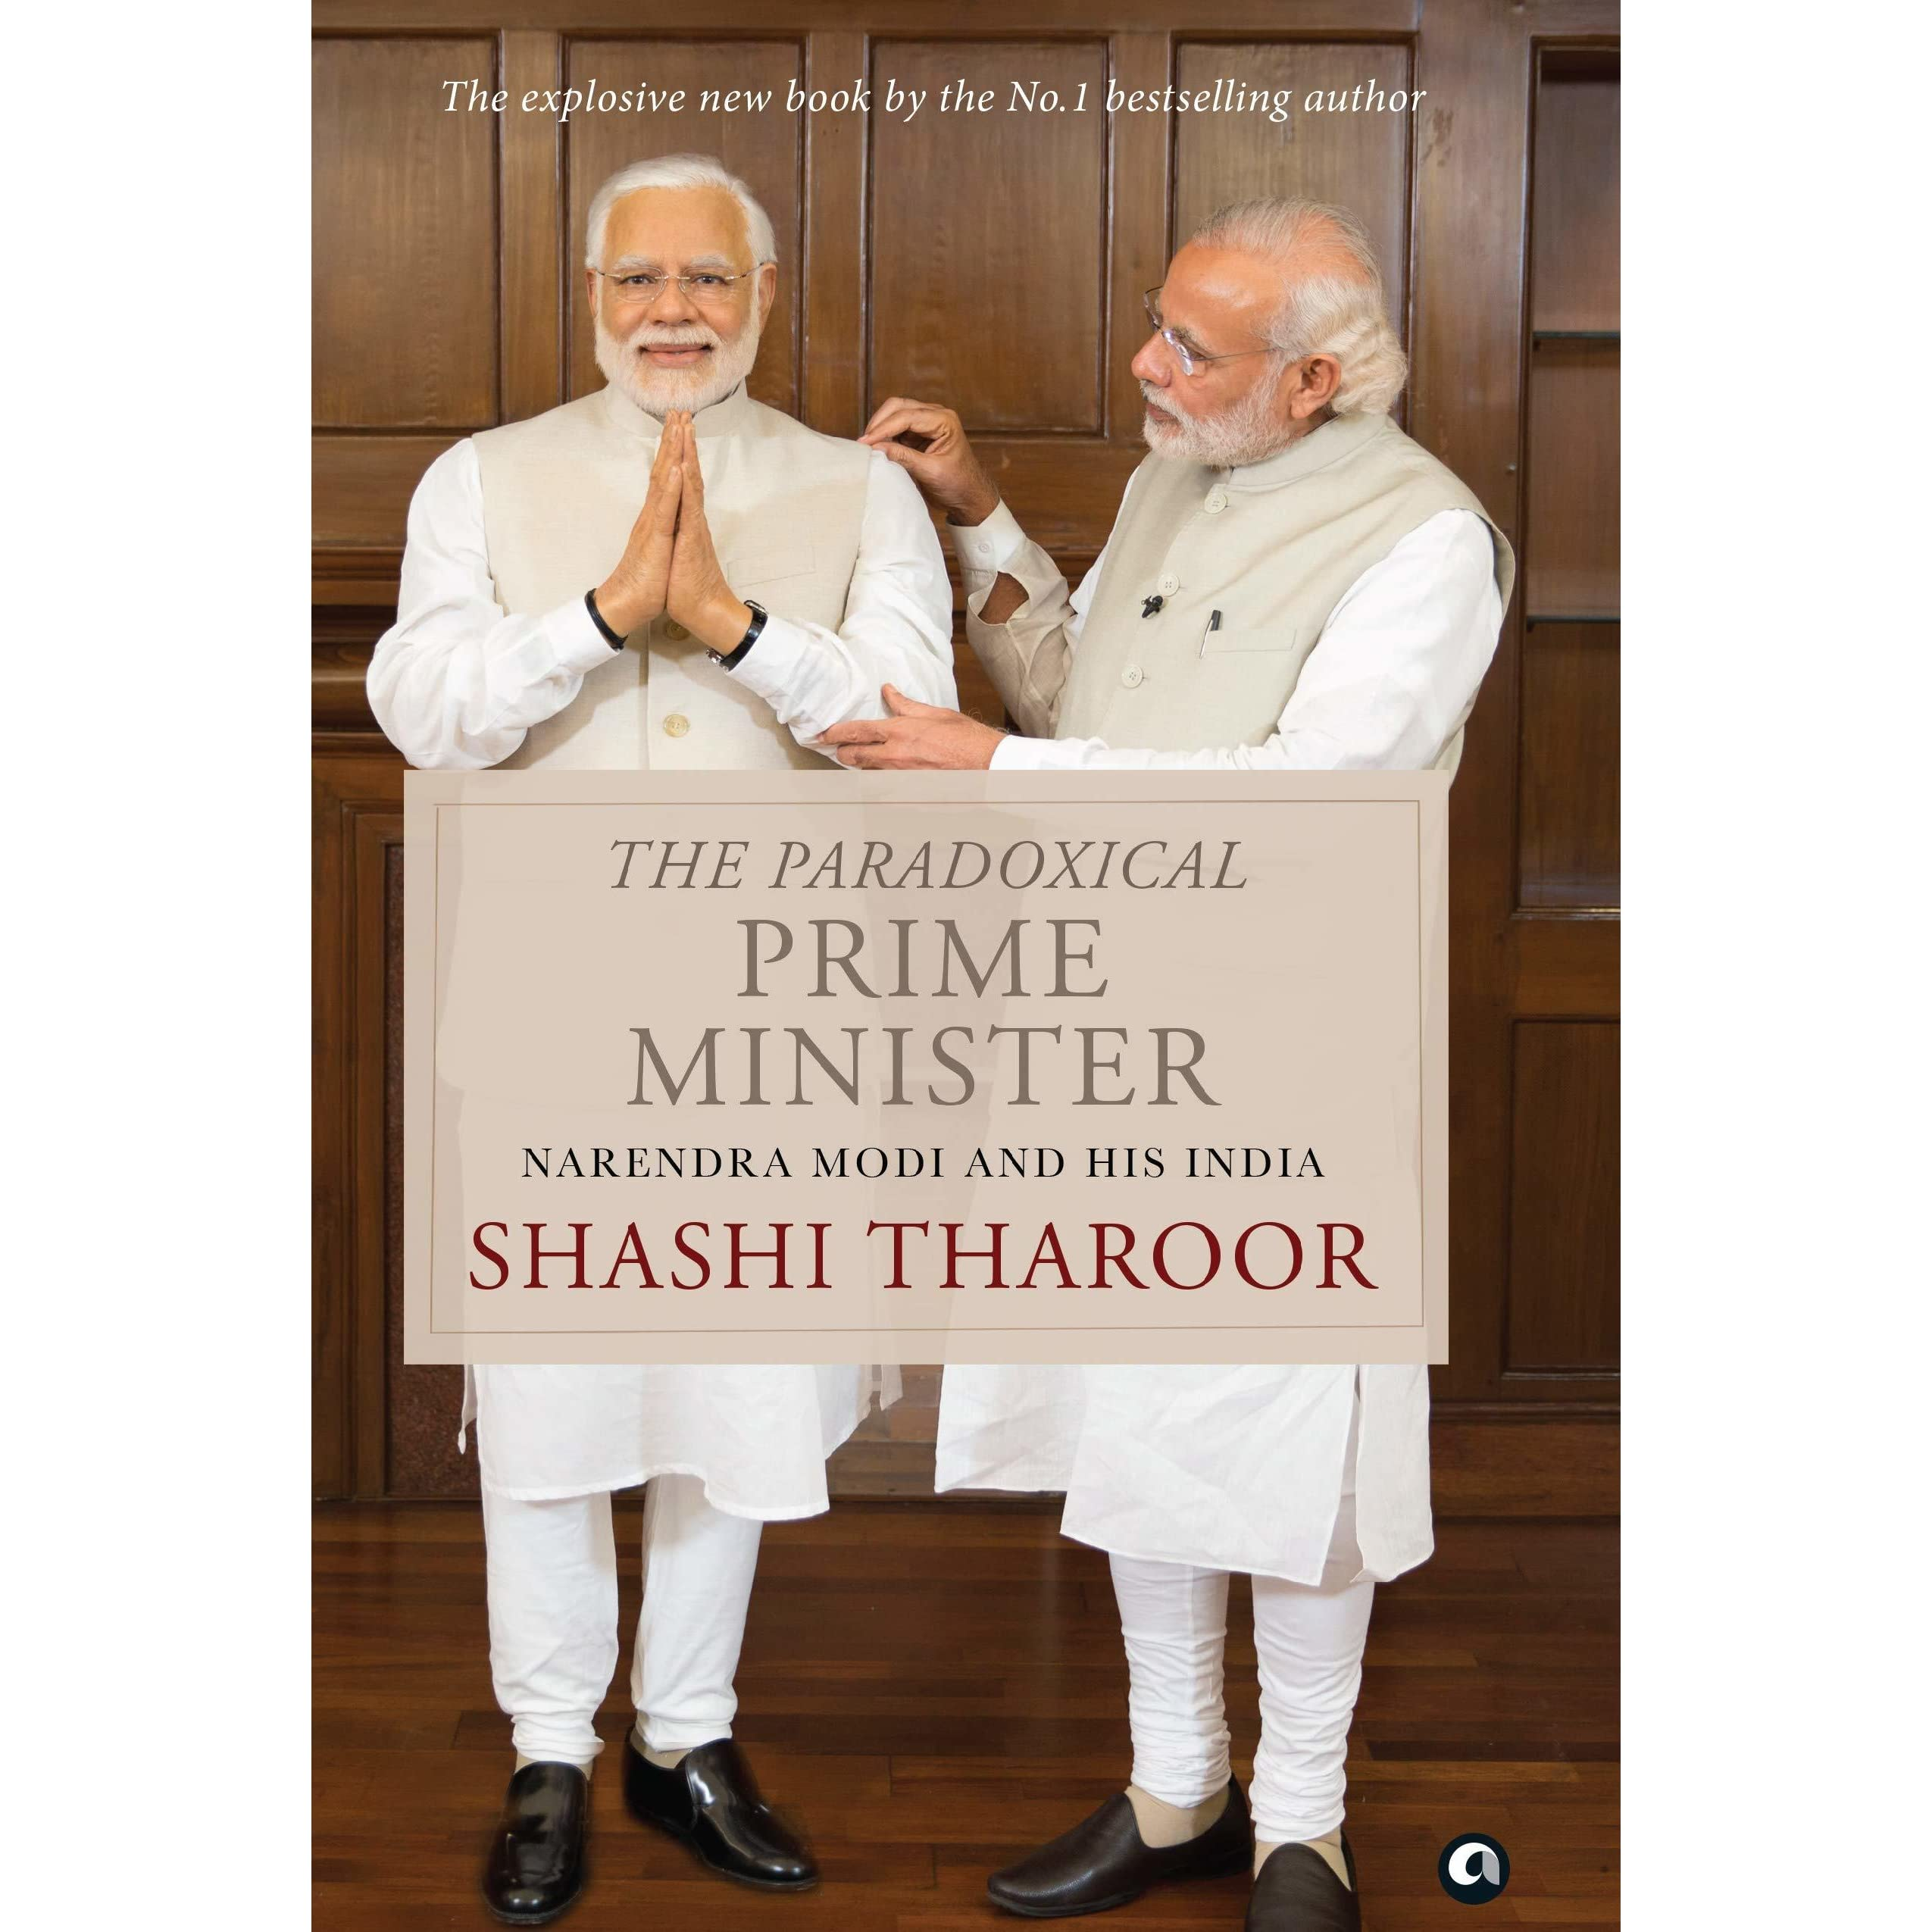 The Paradoxical Prime Minister By Shashi Tharoor